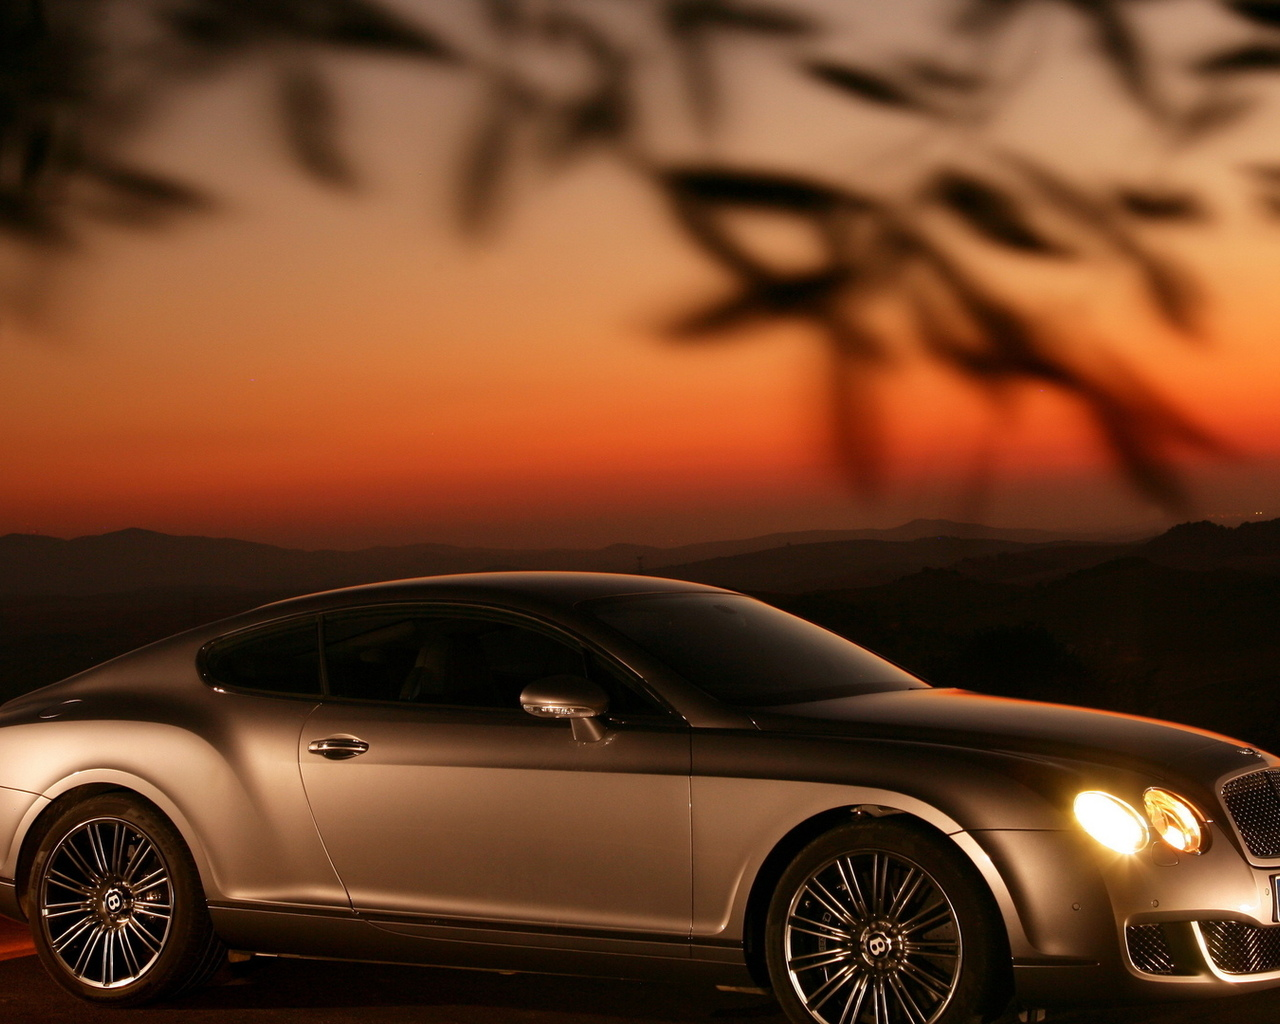 continental gt speed, sunset, bentley